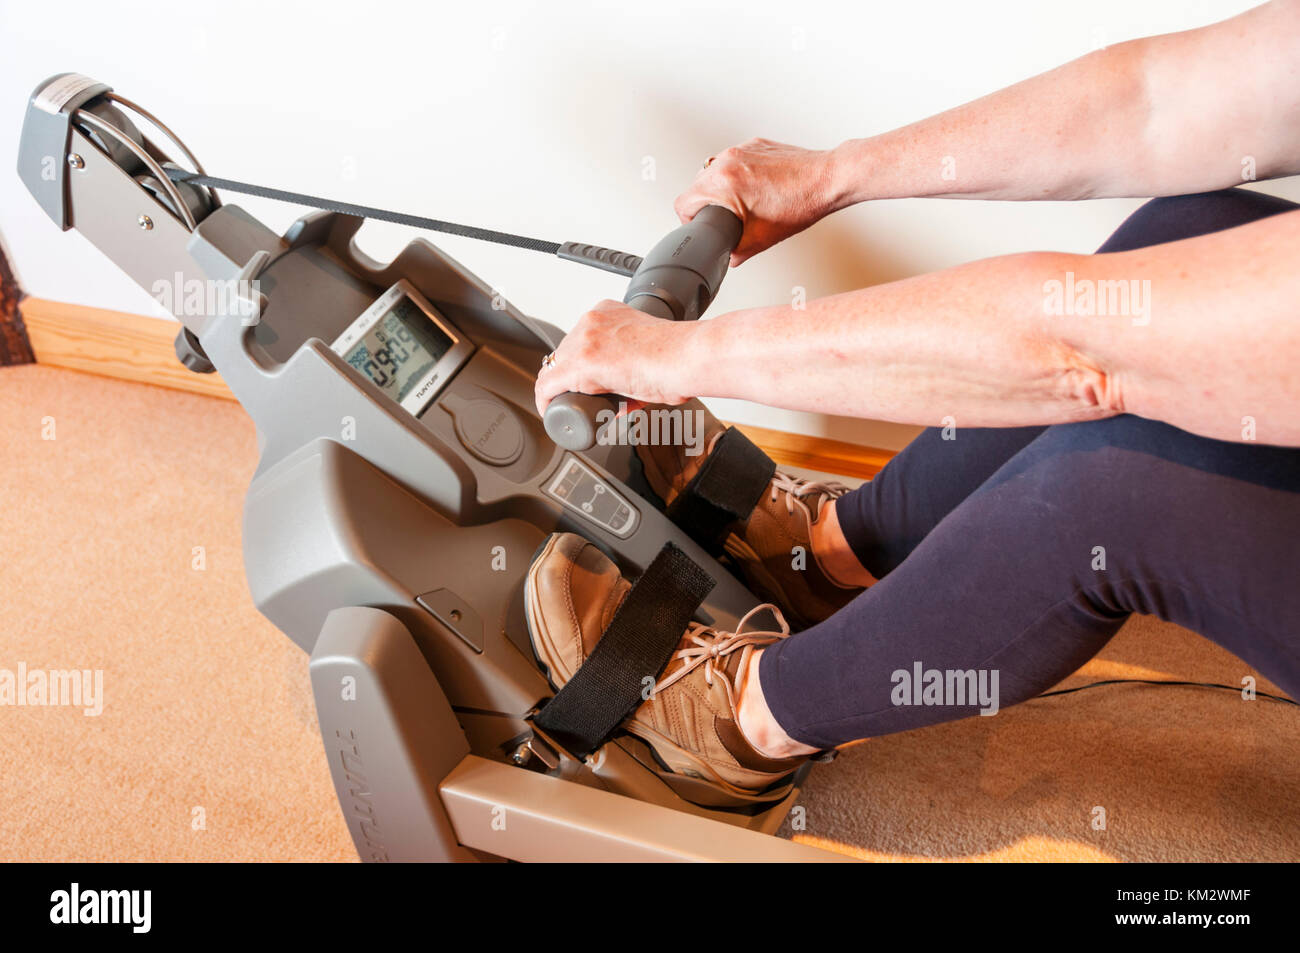 Woman using a Tunturi home exercise machine. - Stock Image